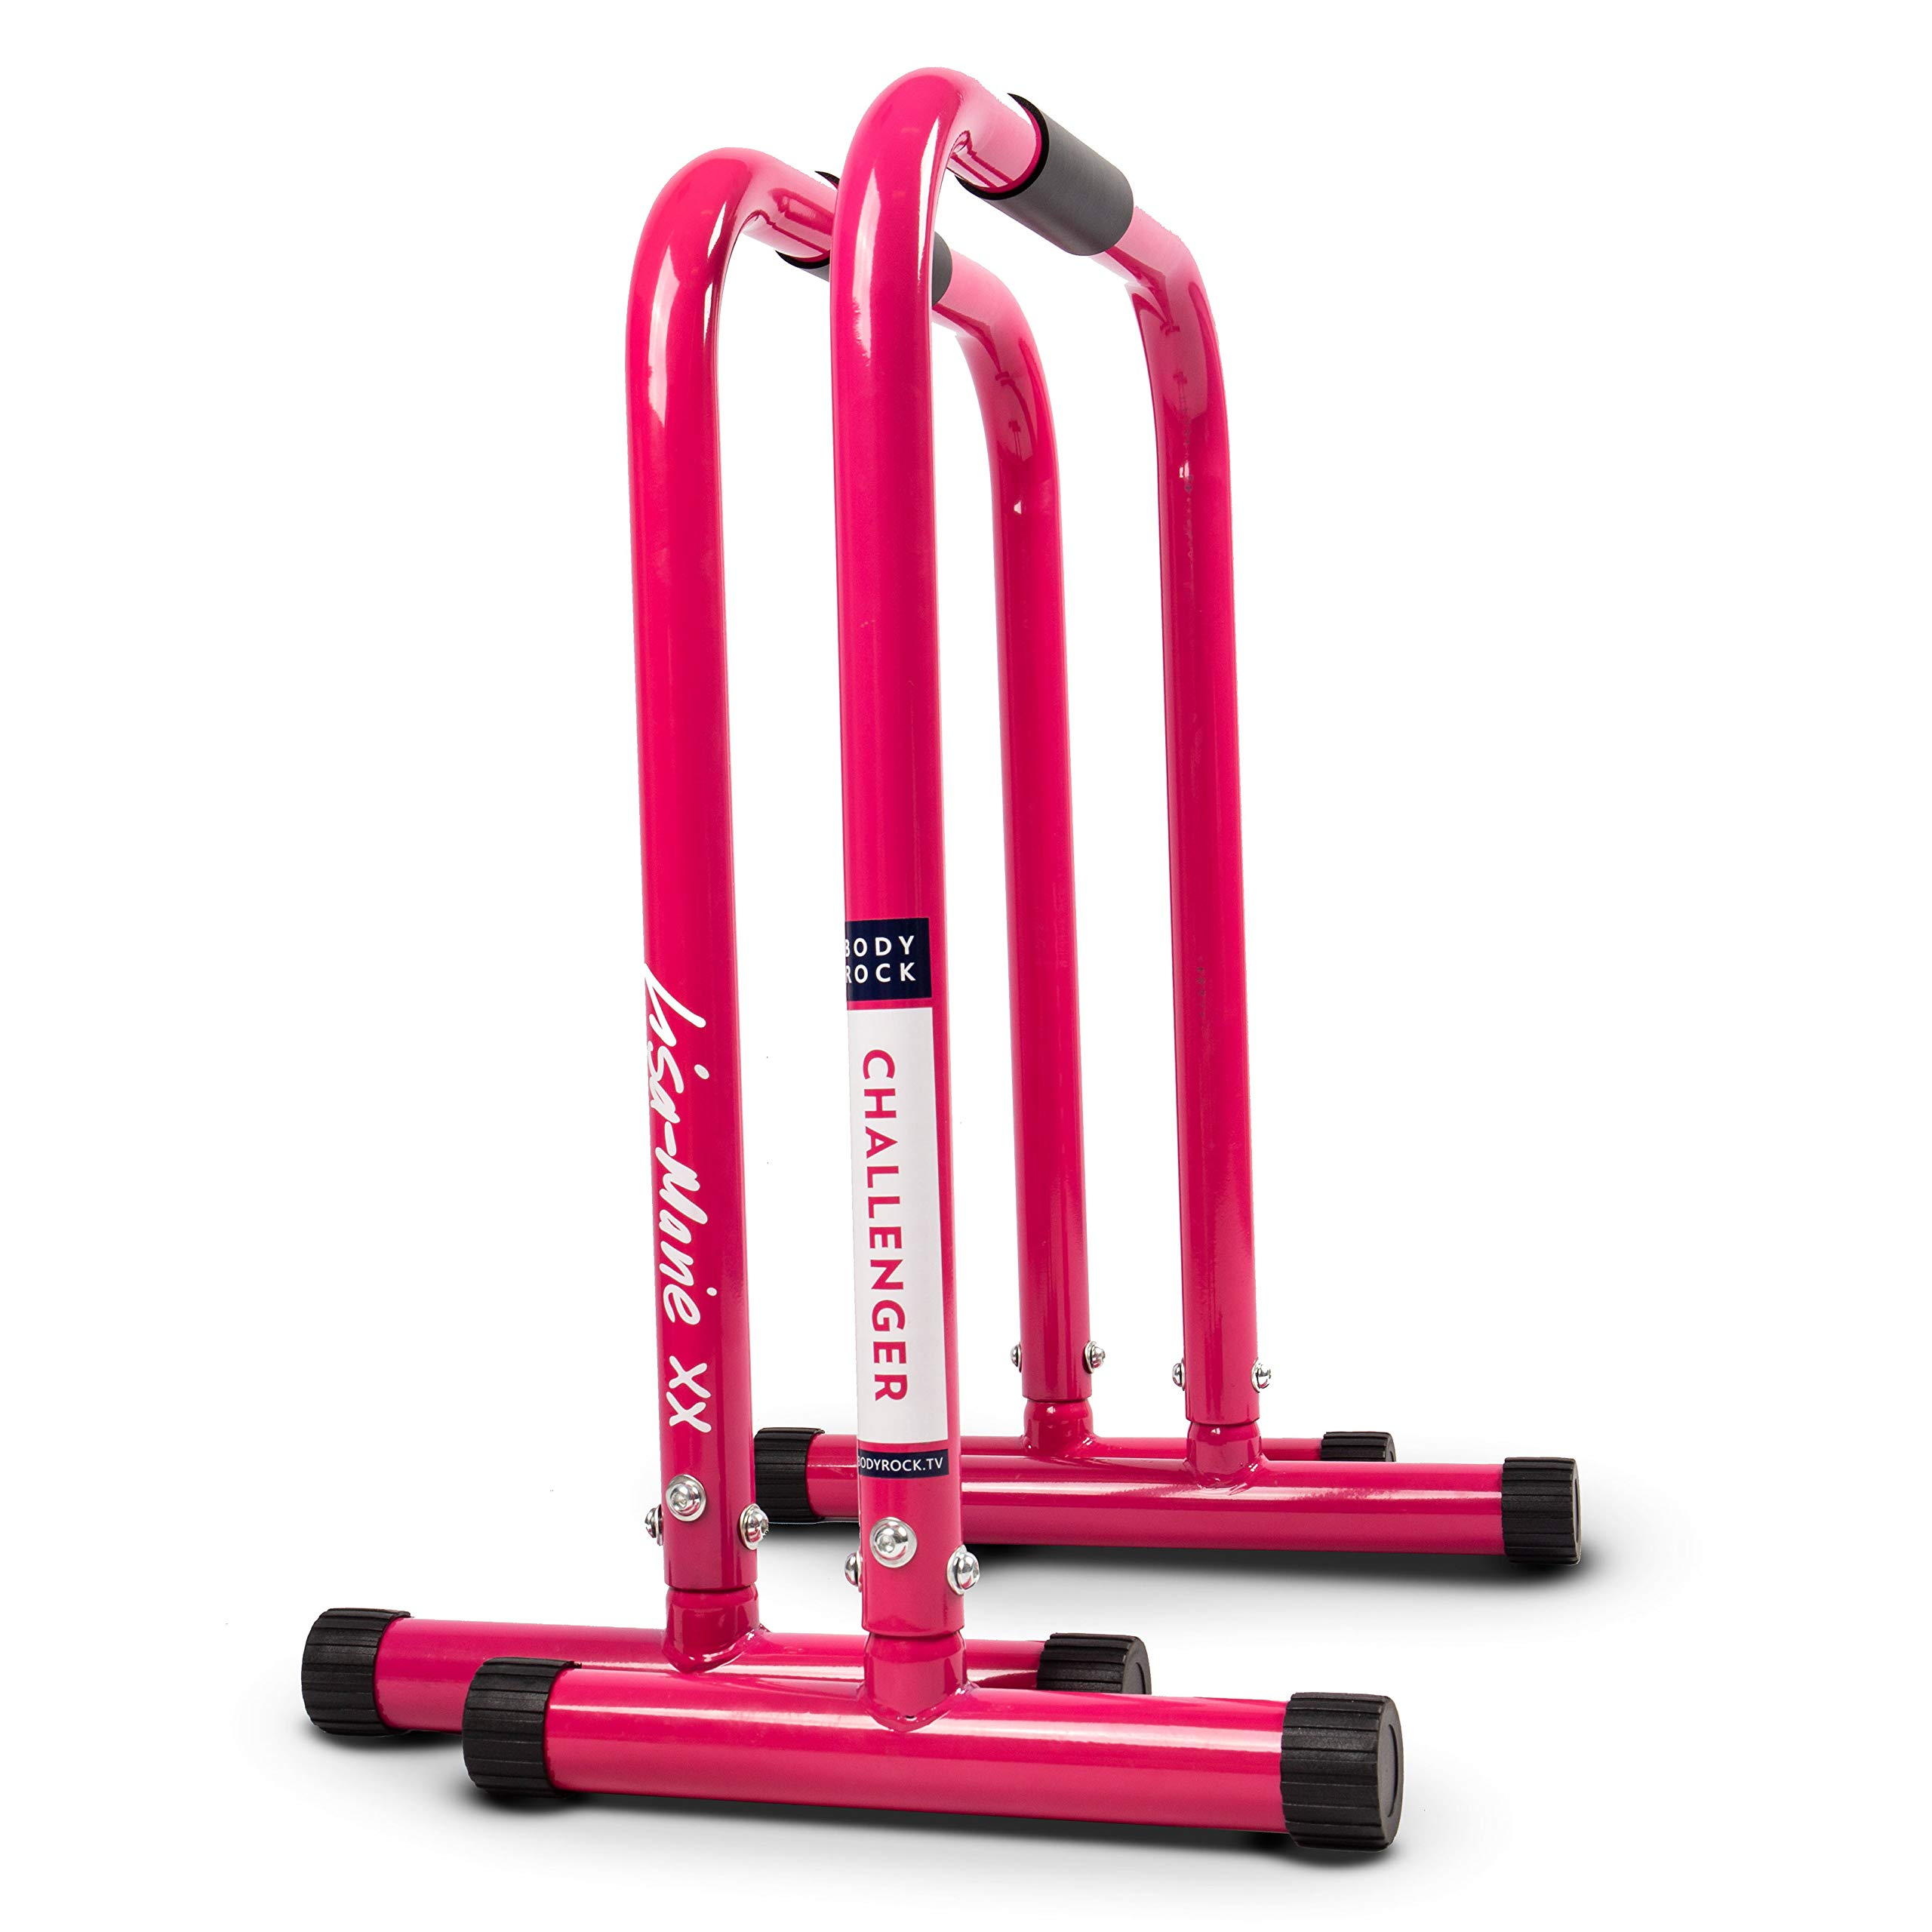 Dip Bar Station for Home Workout: BodyRock Challenger Exercise Bars for Dips & Calisthenics - Parallette Equipment to  Build Core Strength, Balance & Tricep, Arm & Shoulder Muscles - 2 Bars (PINK)